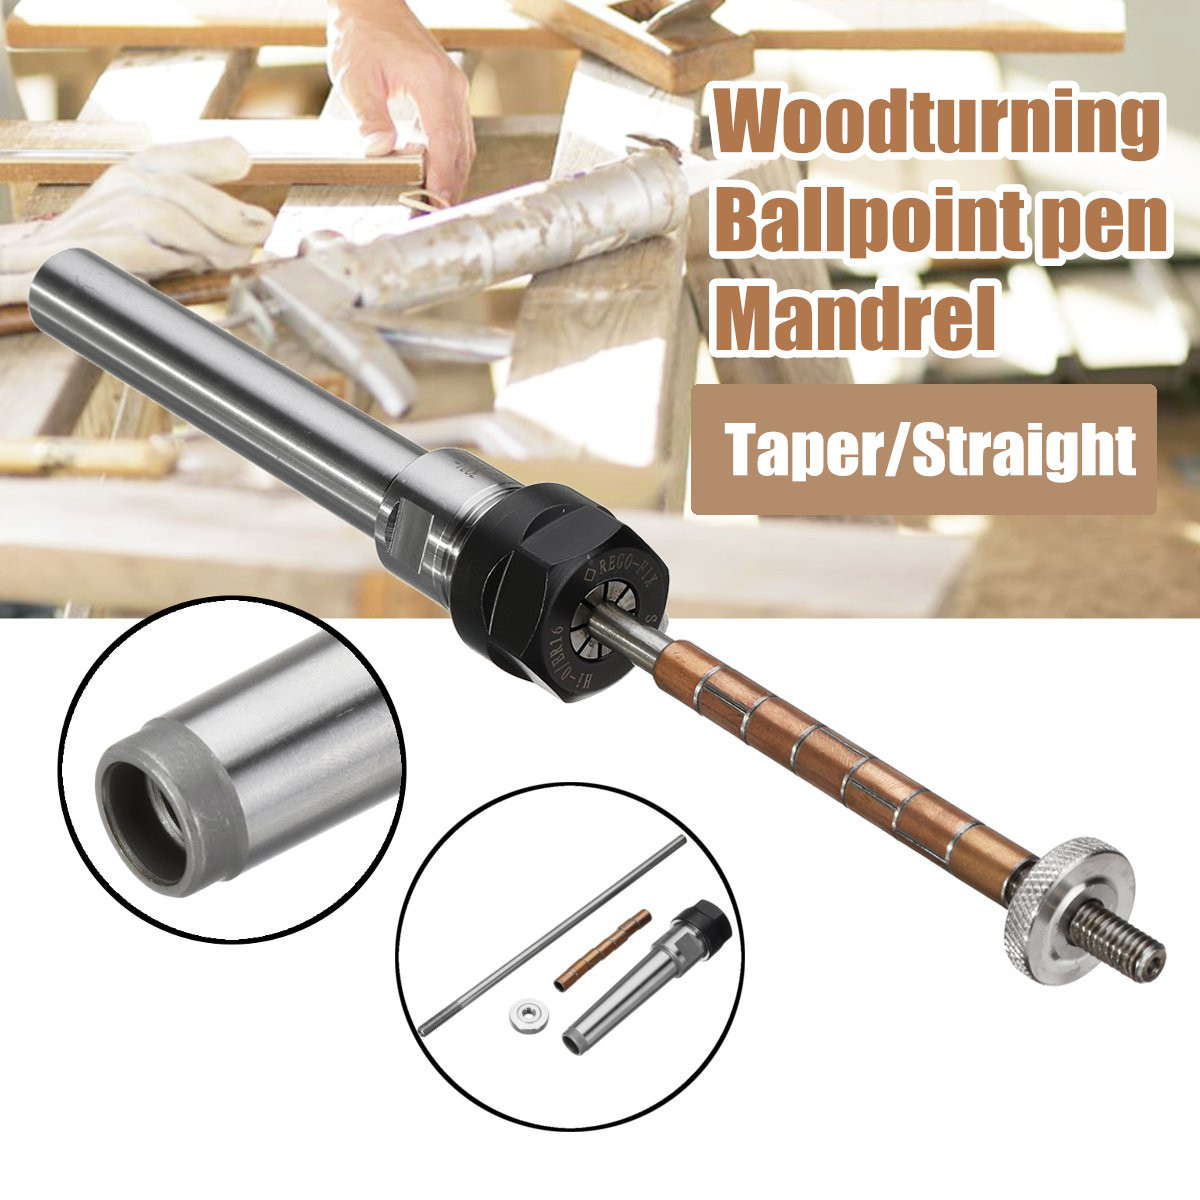 Rotarys Top Lathe Machine Revolving Centre Wood turning Ballpoint pen Mandrel Taper/Straight ShankRotarys Top Lathe Machine Revolving Centre Wood turning Ballpoint pen Mandrel Taper/Straight Shank